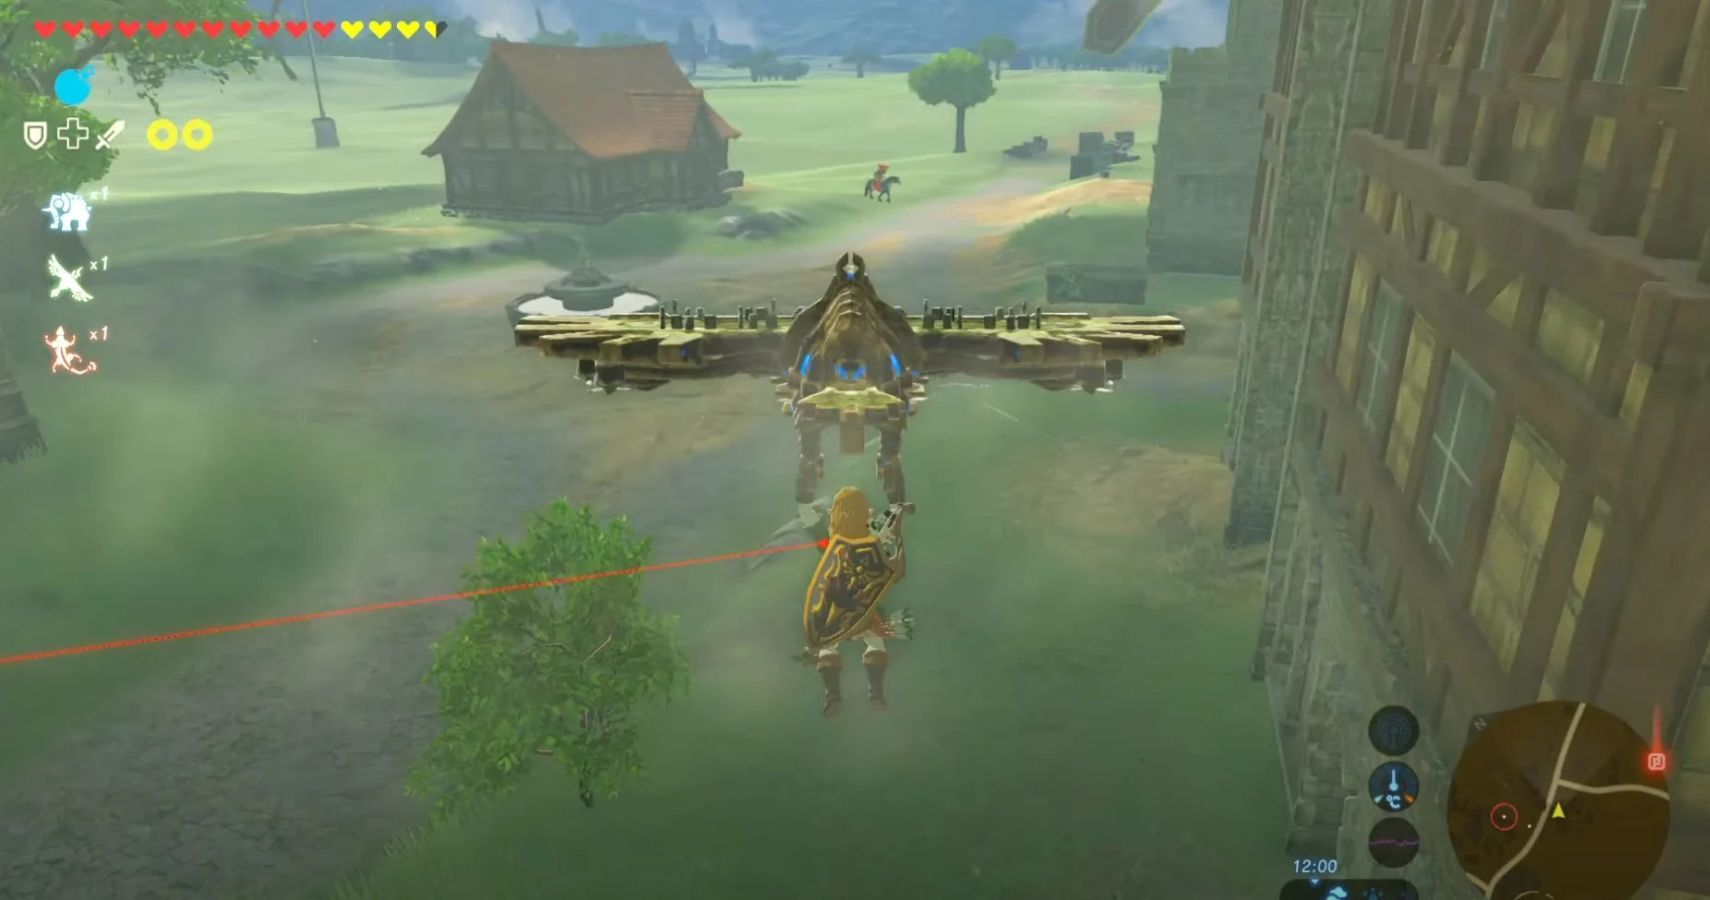 Modder Rebuilds Hyrule In Breath of the Wild Using Age Of Calamity Buildings